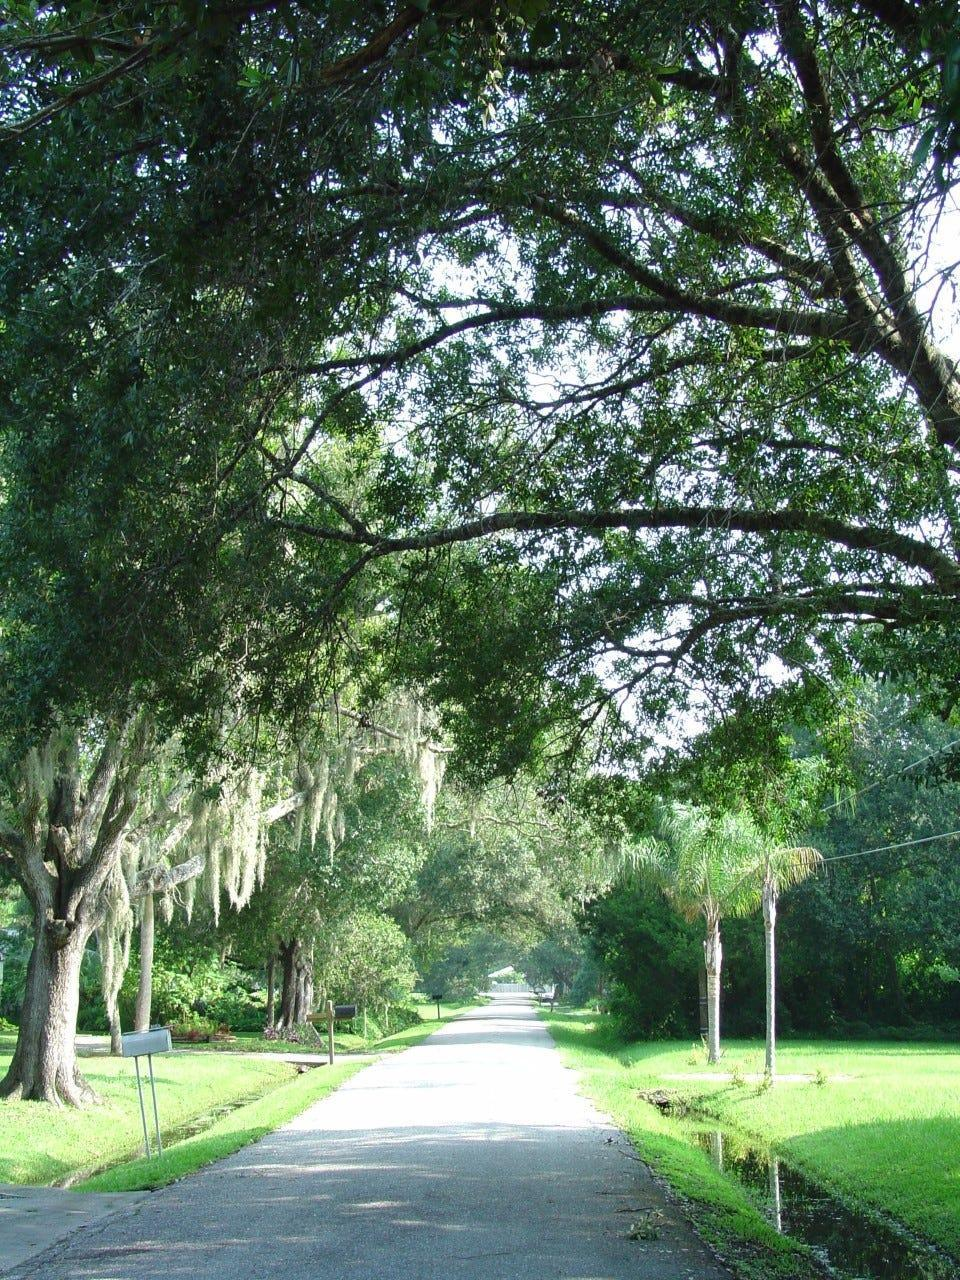 Shade trees lining a road in an urban setting